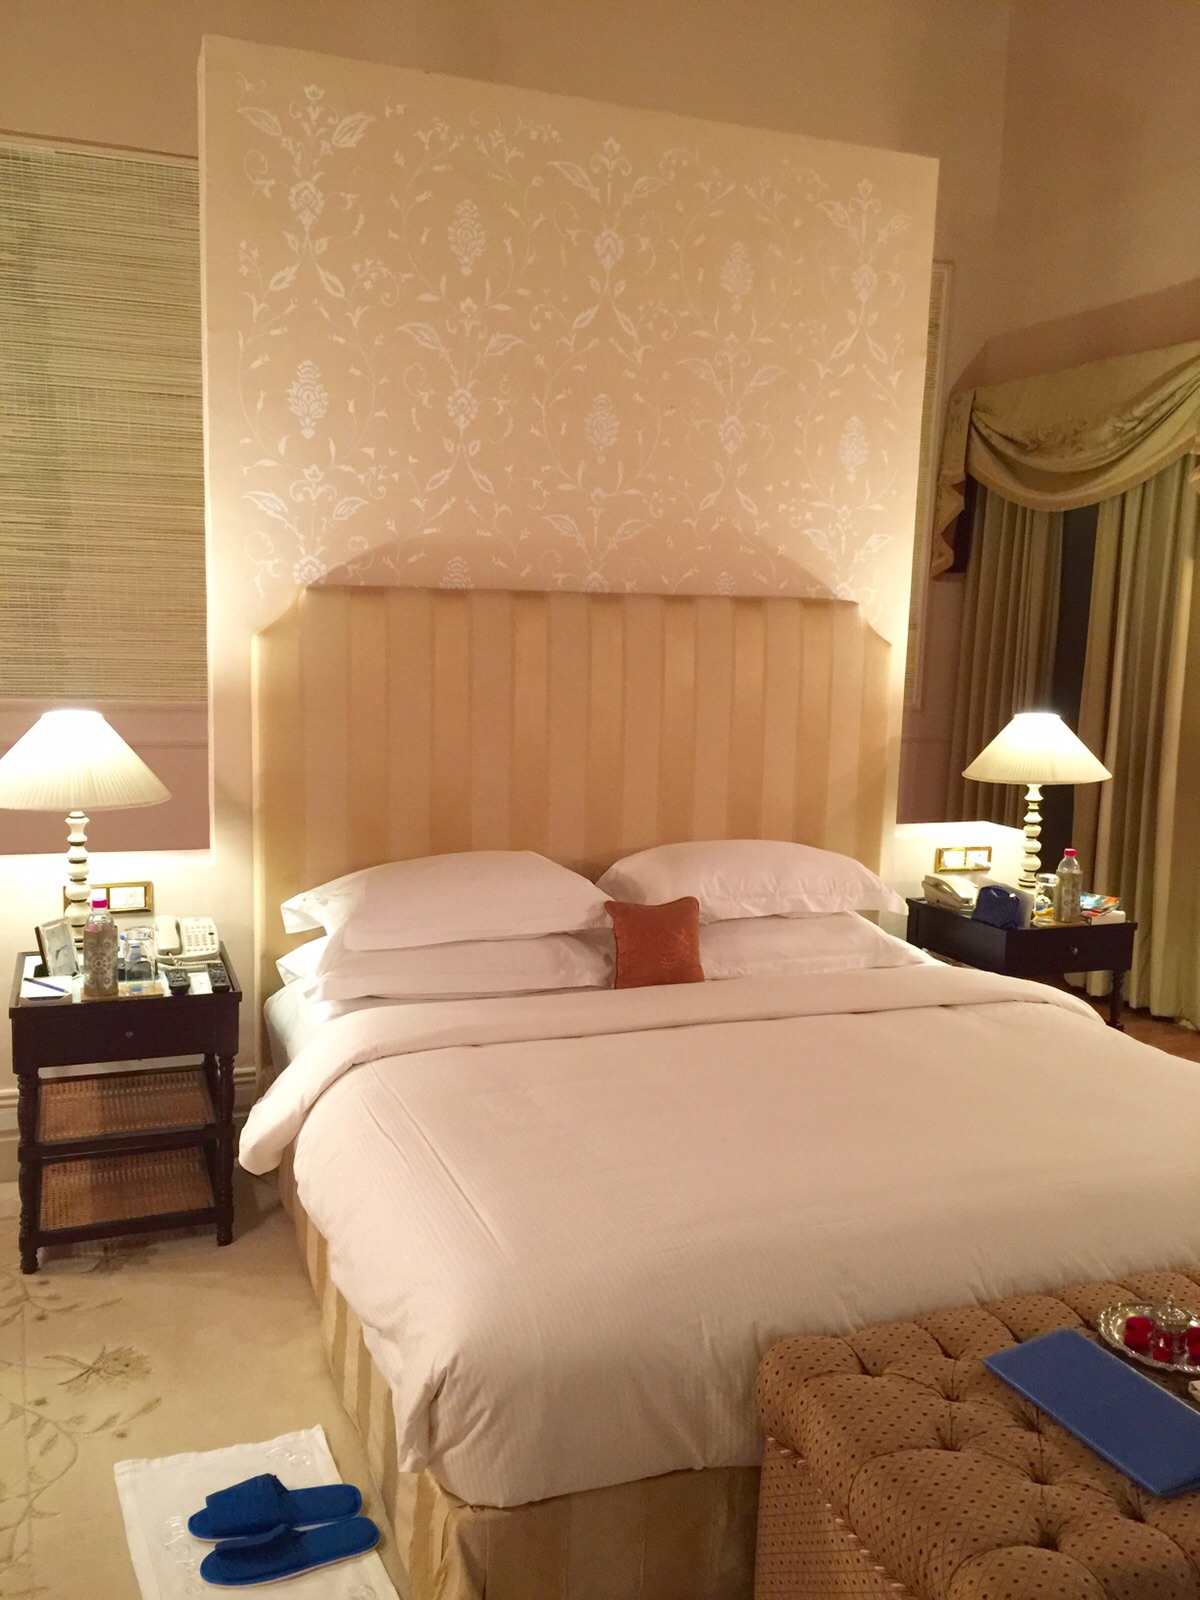 bedroom - taj hyderabad